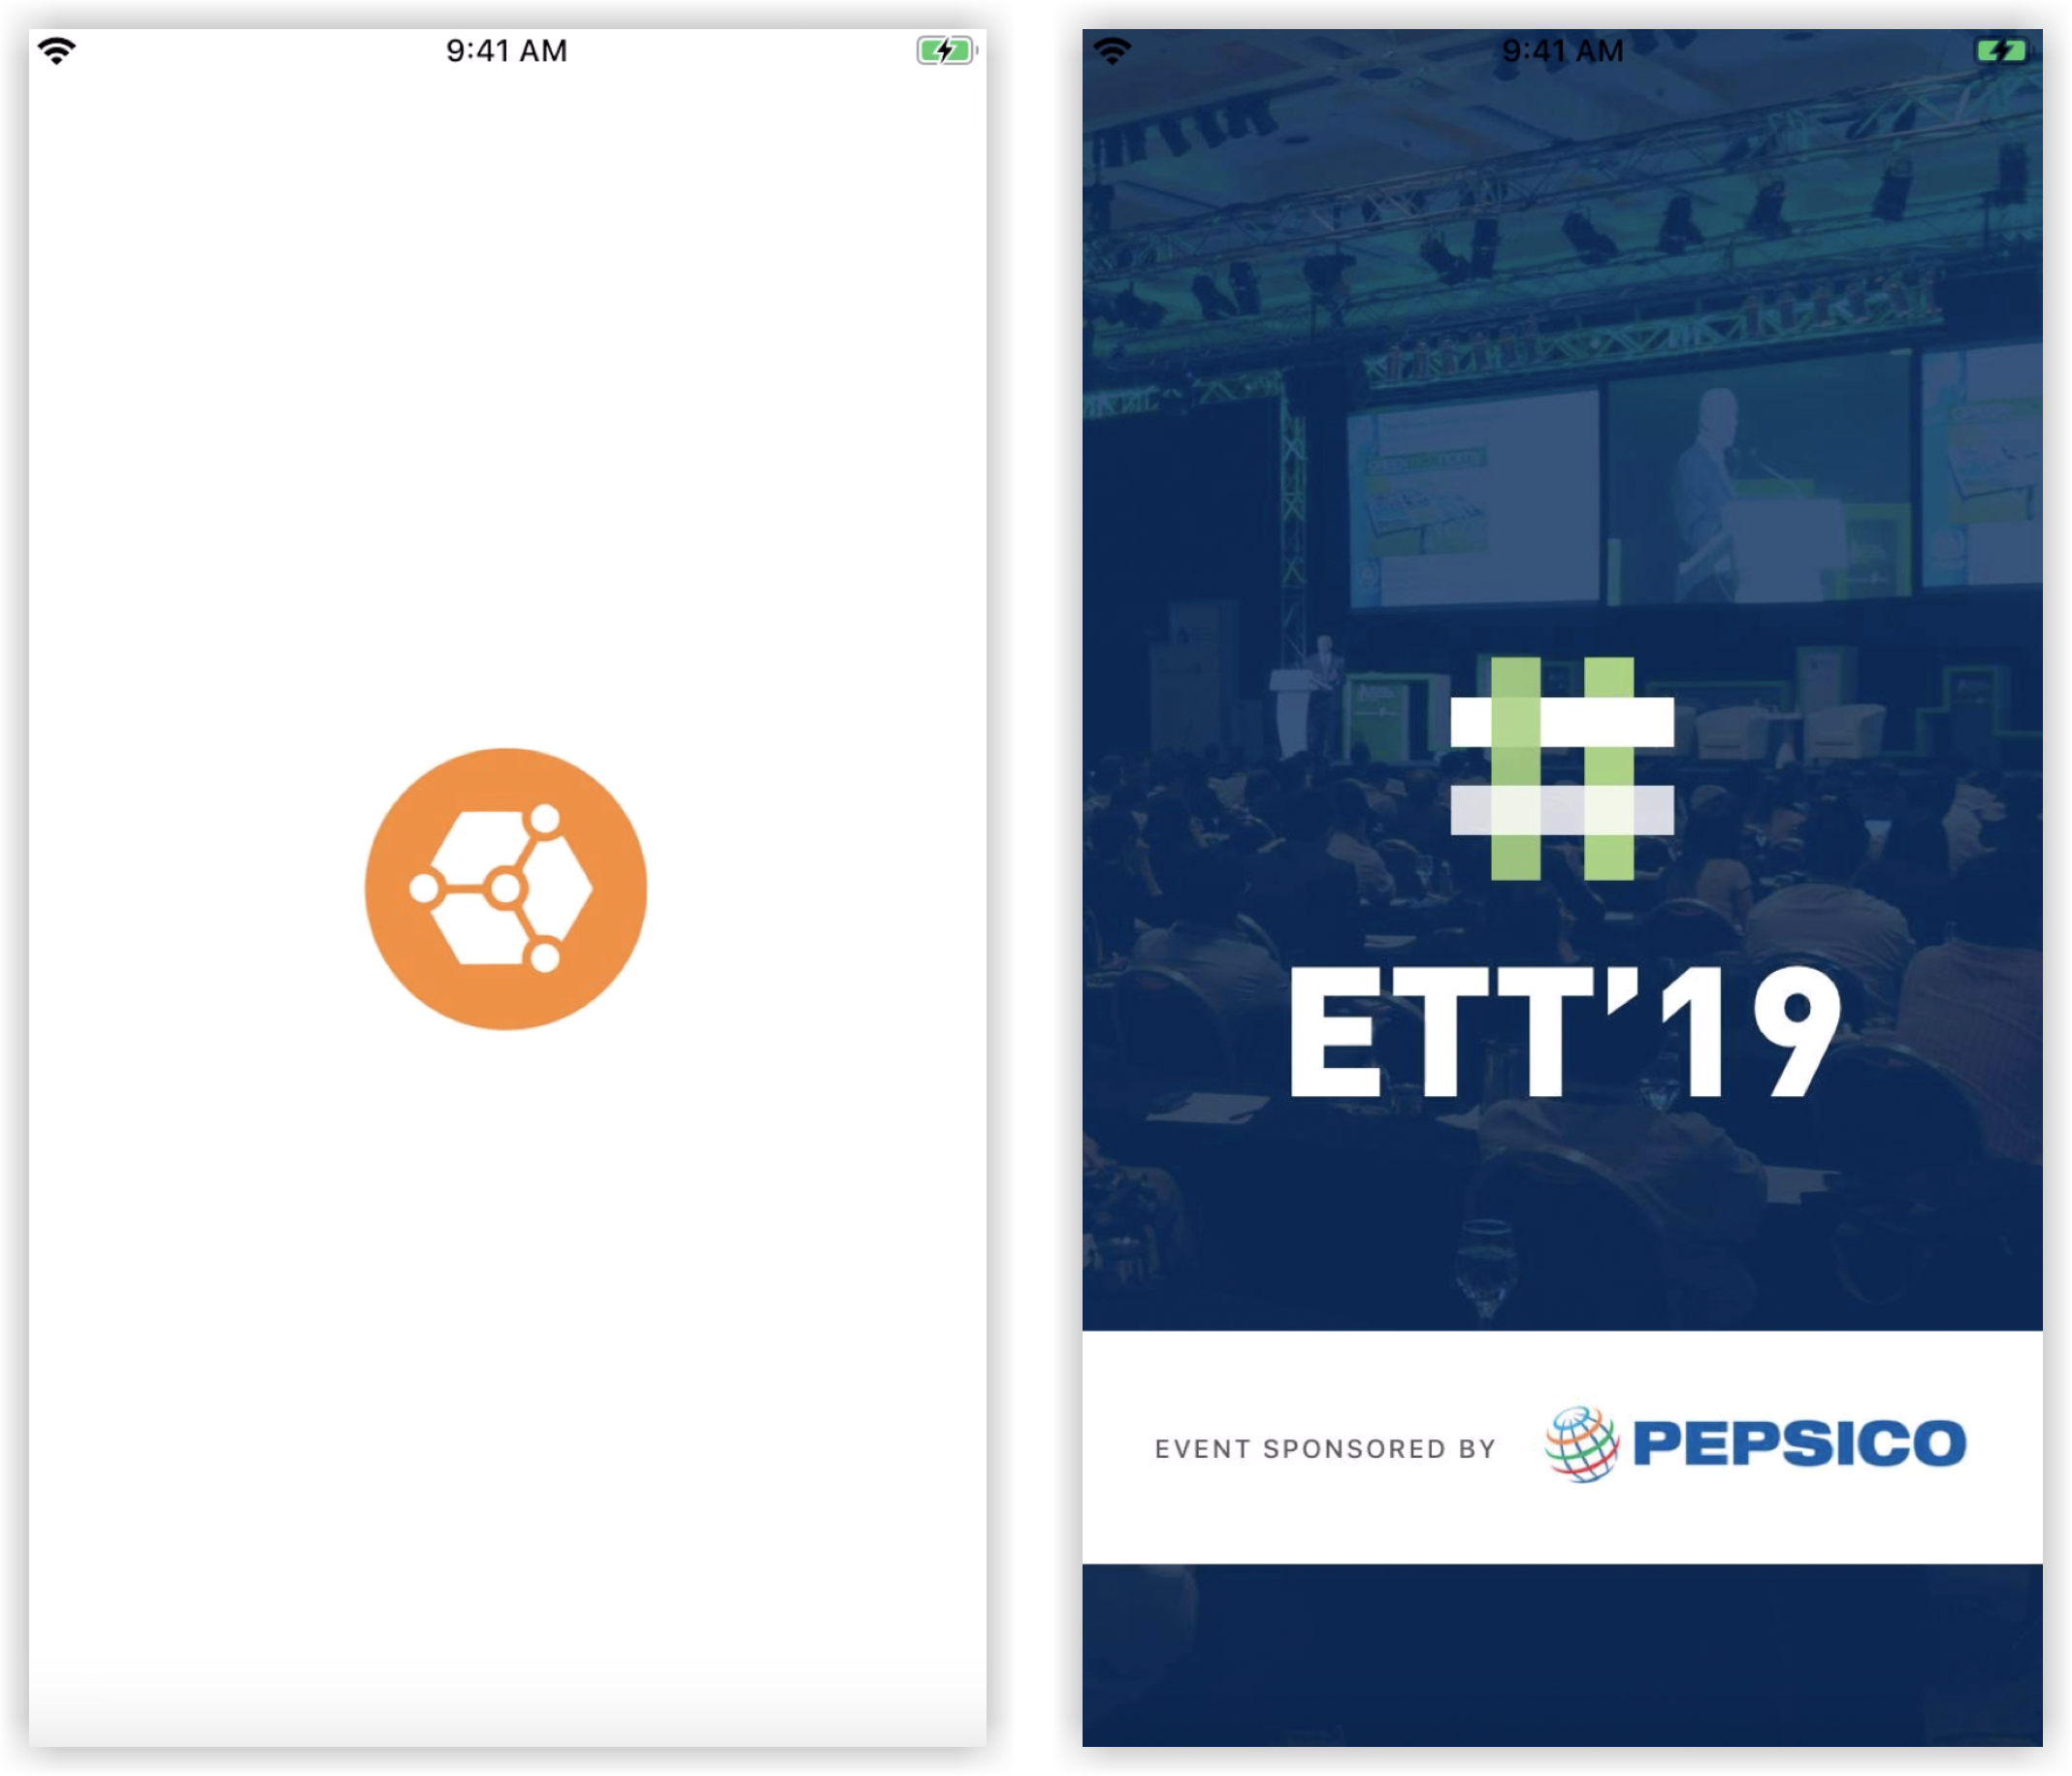 Two screenshots. One of the Socio Event App's splash screen, and the other of a Branded App splash screen.